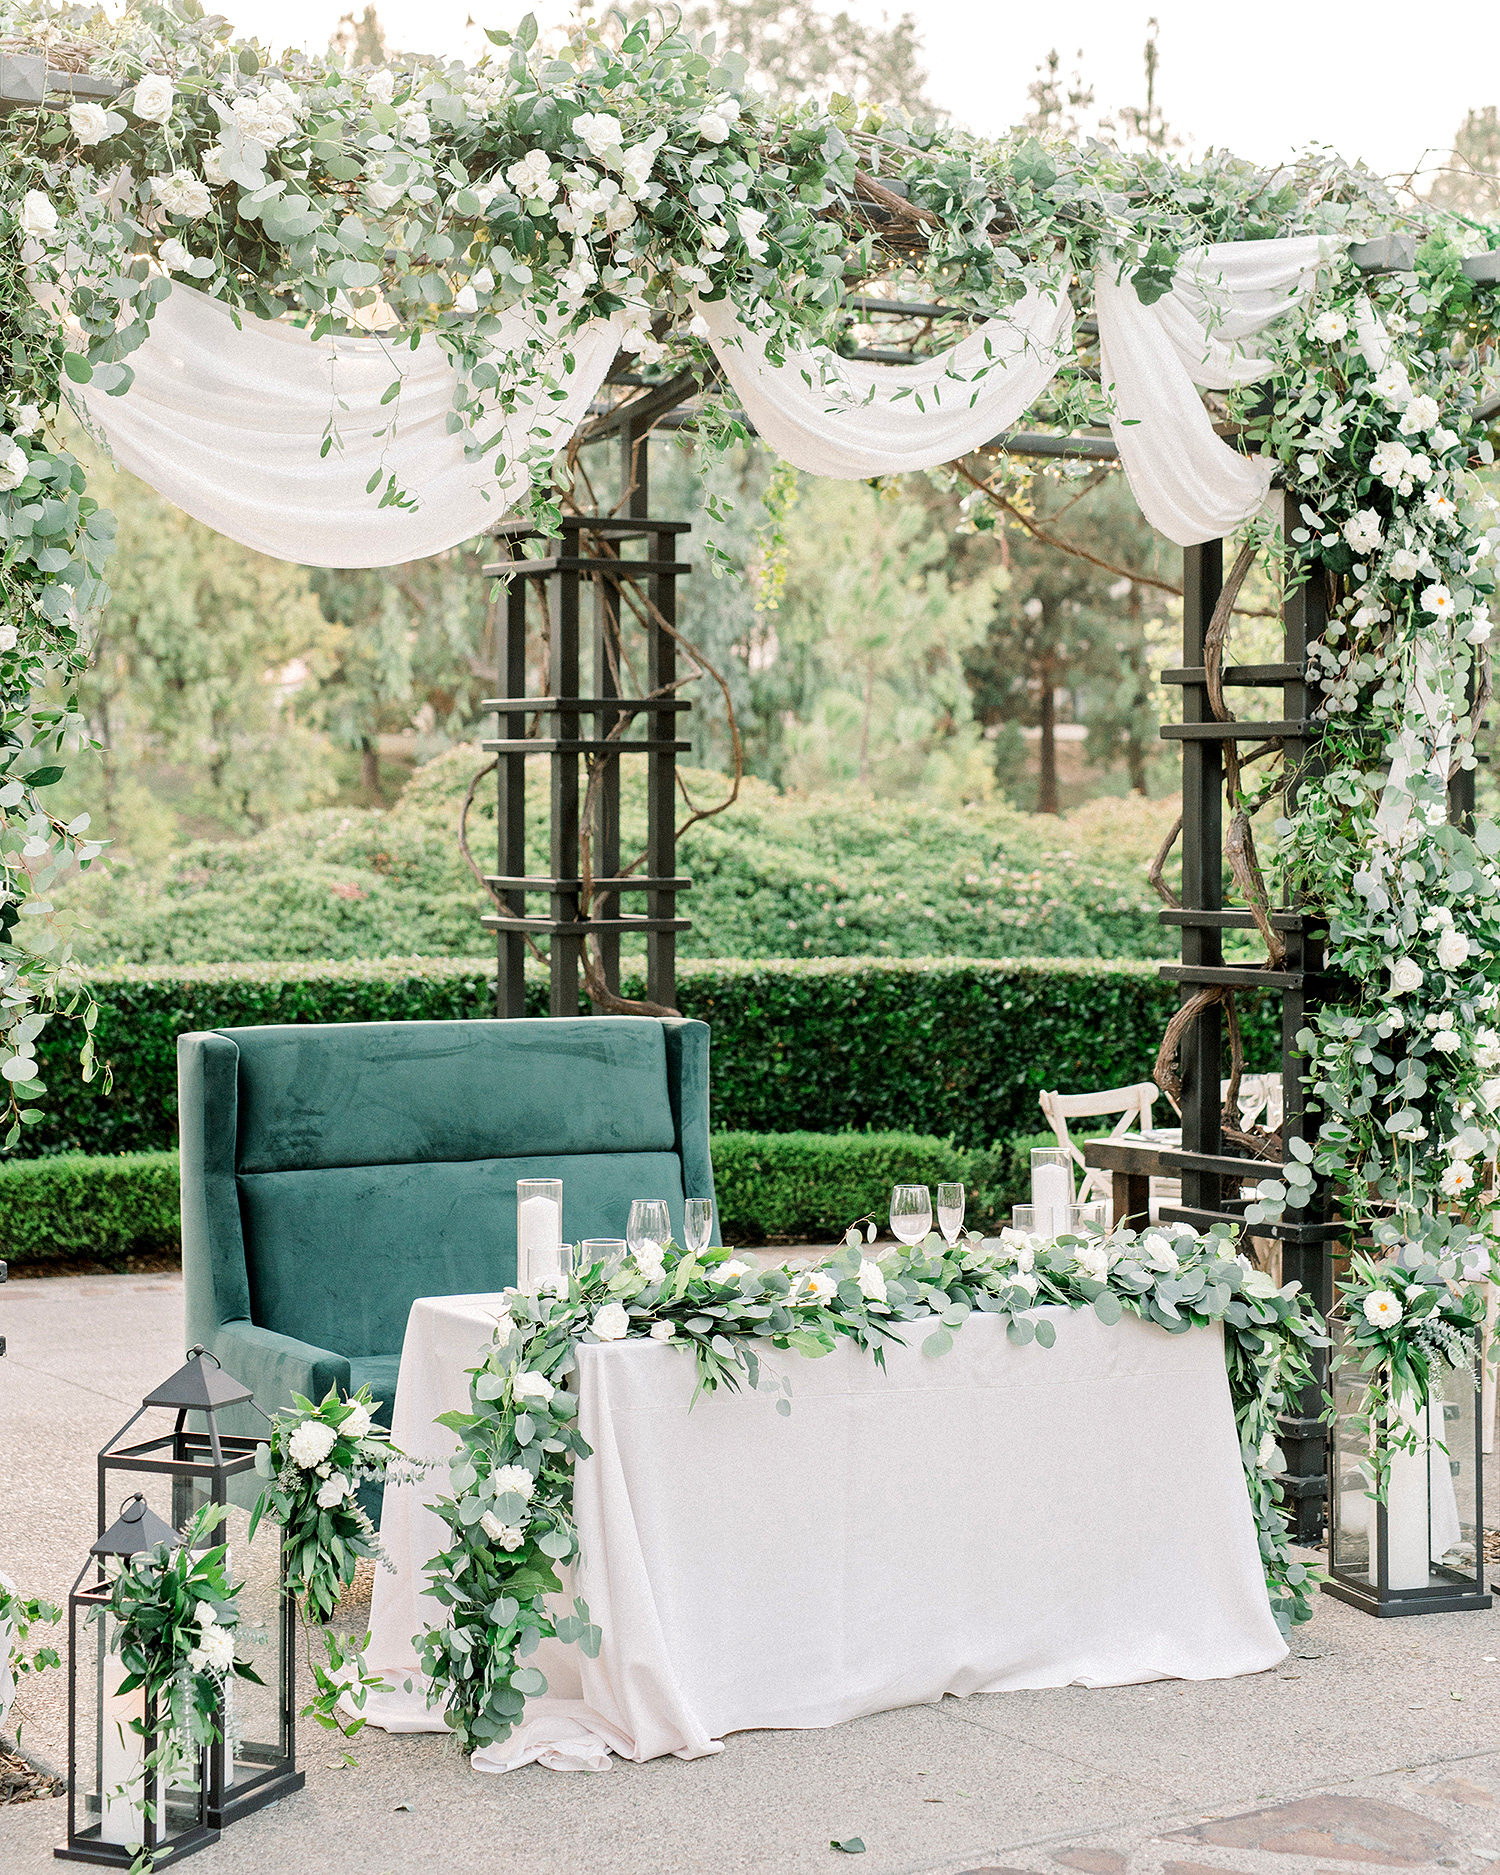 draped tulle over green loveseat at sweetheart table